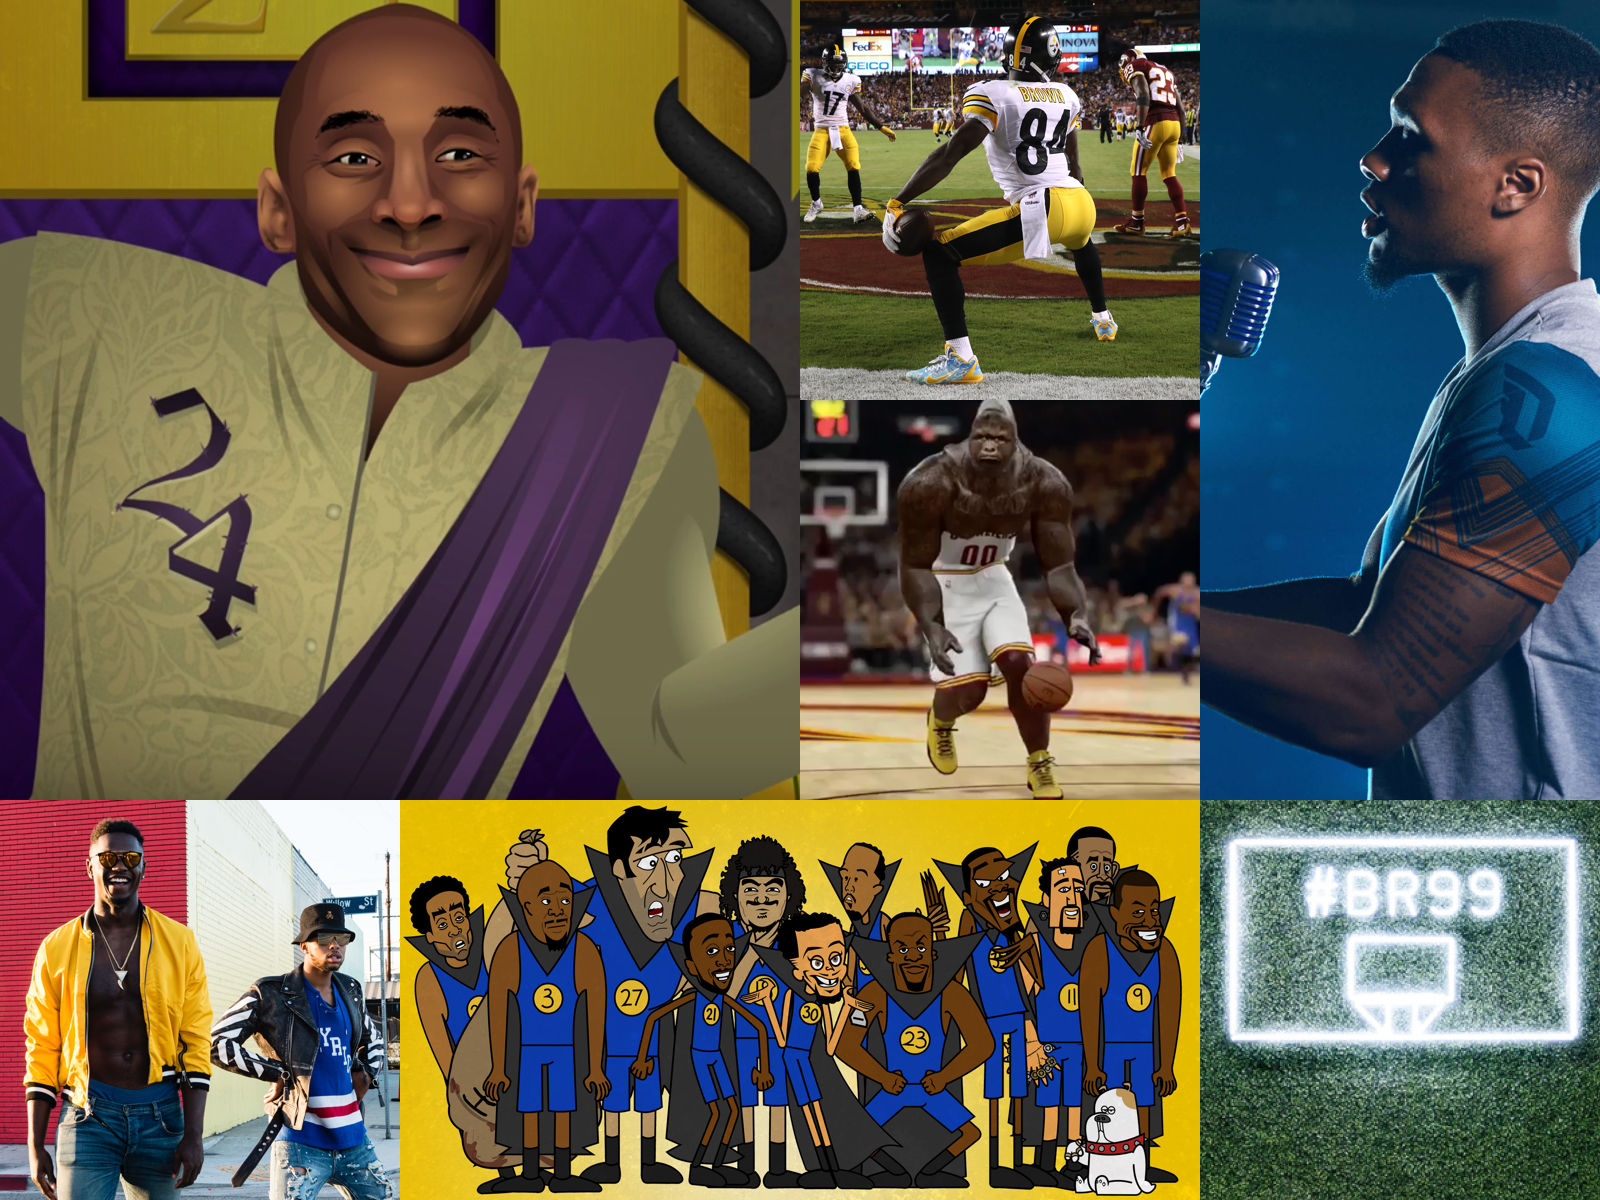 Sports collage image